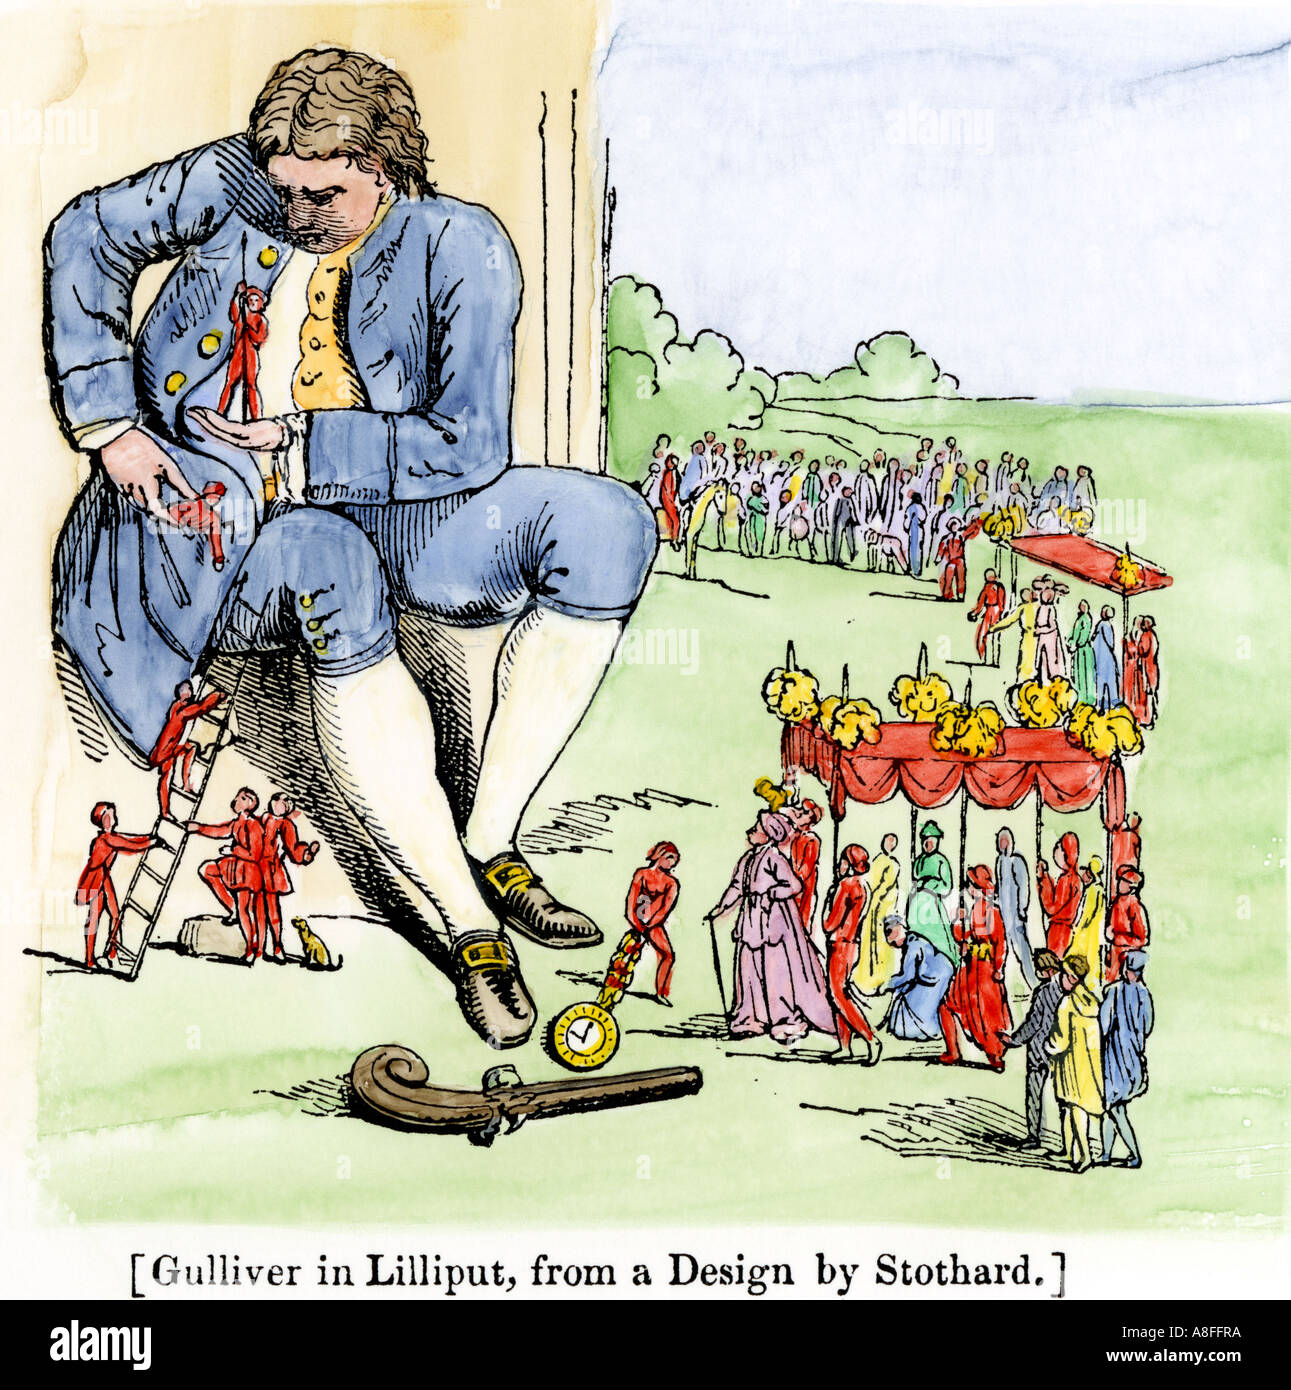 Gulliver in Lilliput as described by Jonathan Swift in Gullivers Travels. Hand-colored woodcut - Stock Image